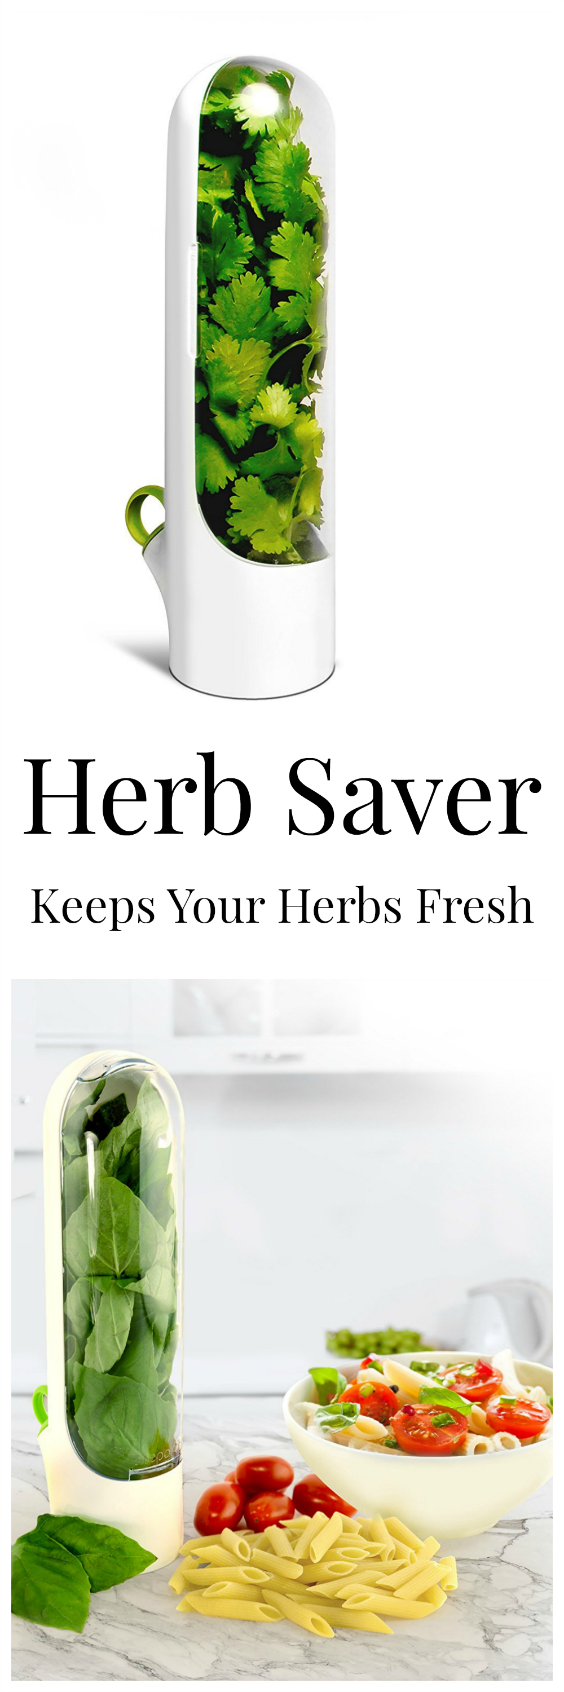 Herb Saver - Keeps herbs fresh for up to 3 weeks. #kitchen #gadgets ...